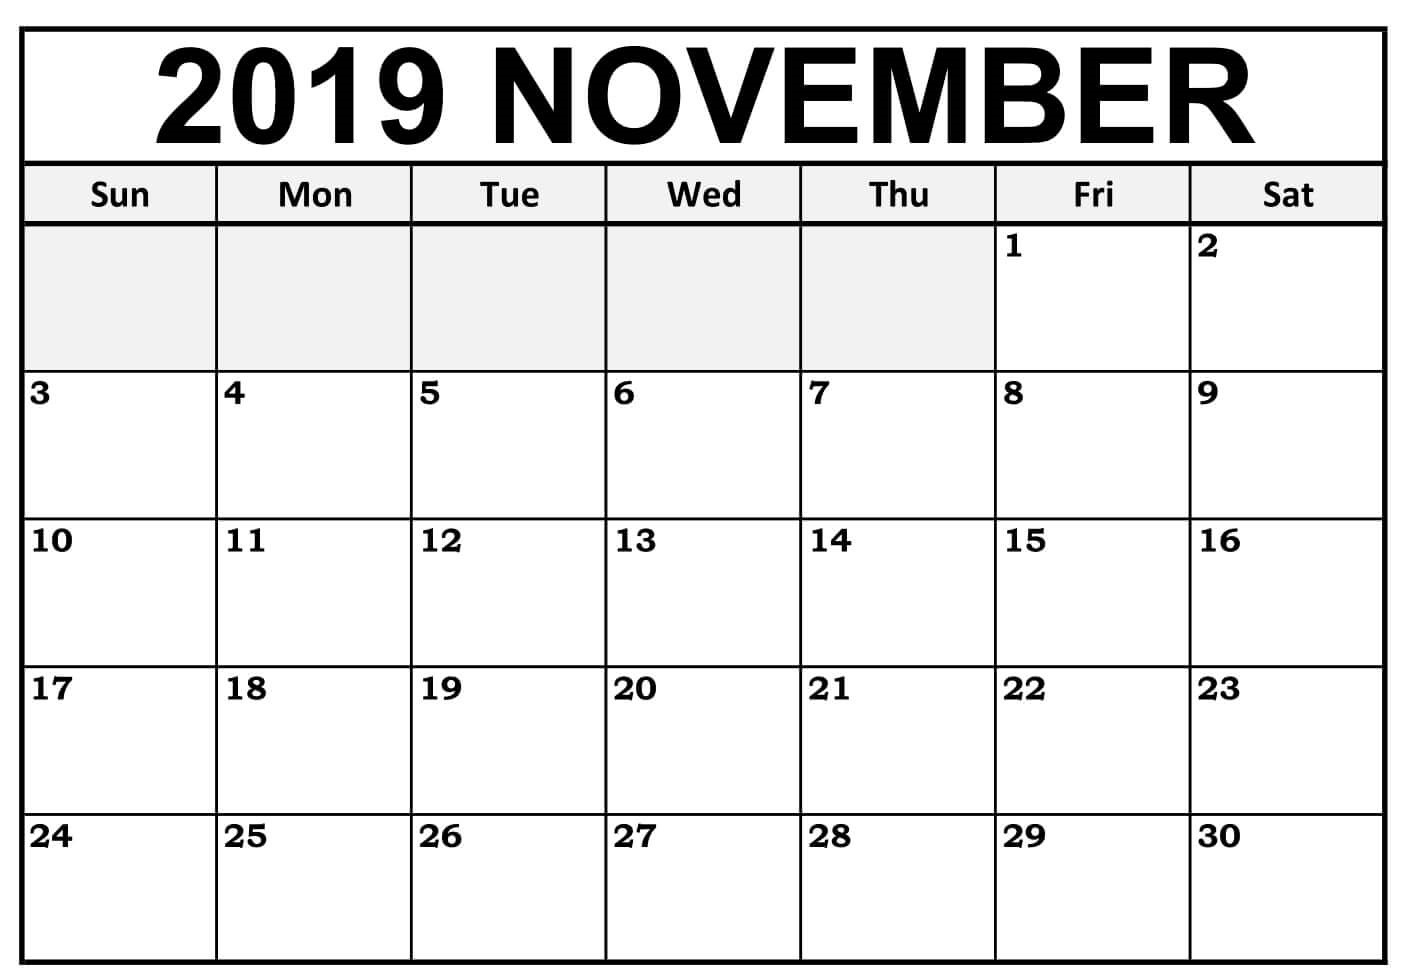 Editable 2019 November Calendar Printable Template With Notes in Writable December 2020 Calendar